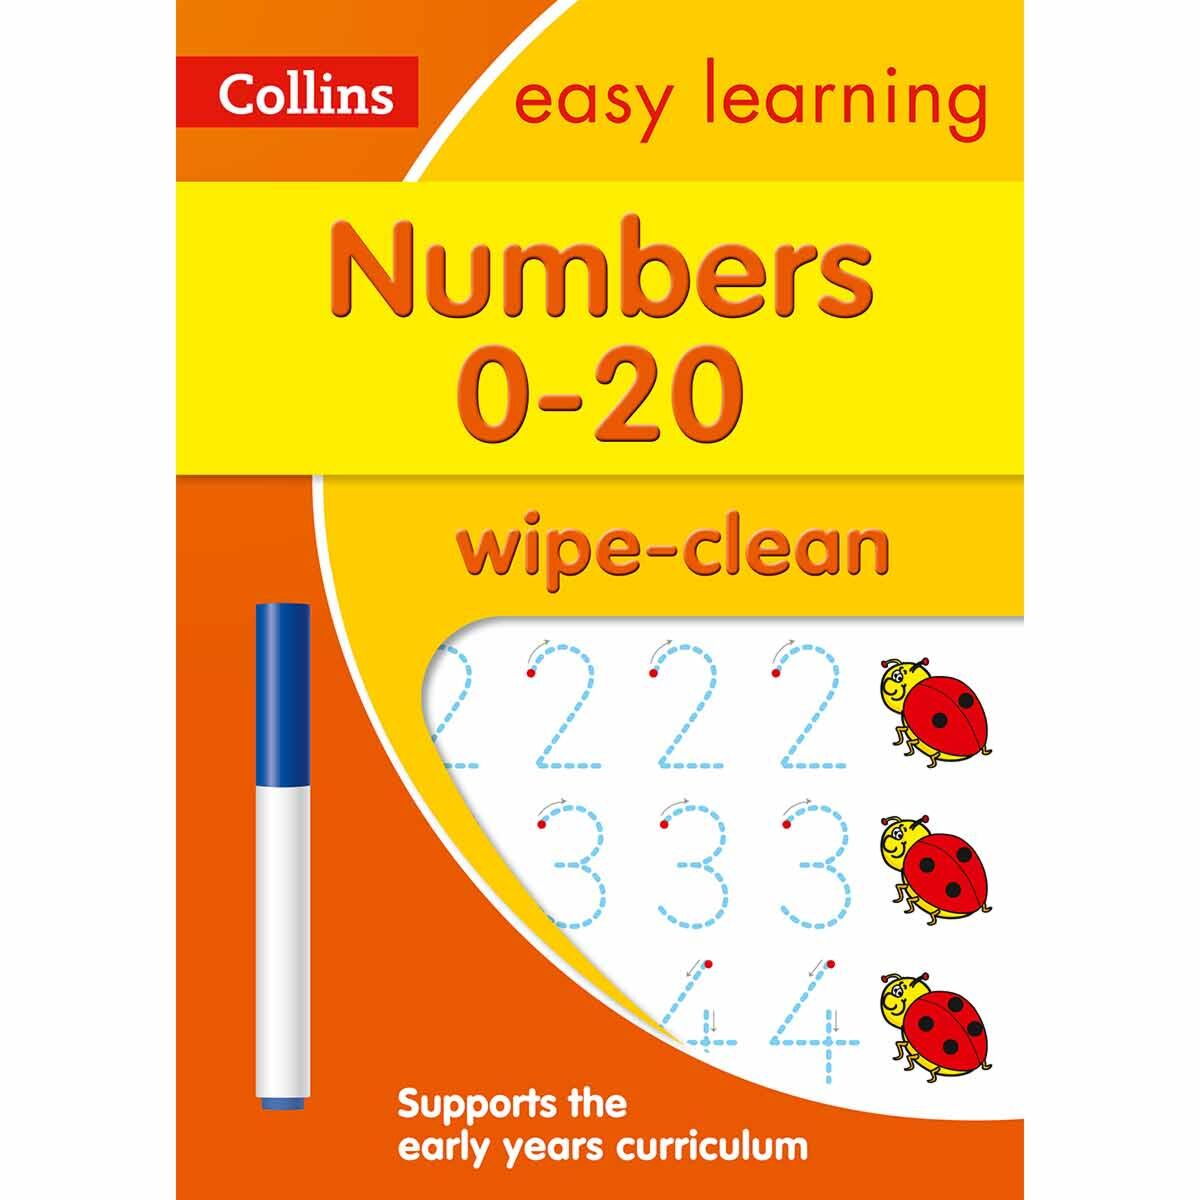 Collins Easy Learning Numbers 0-20